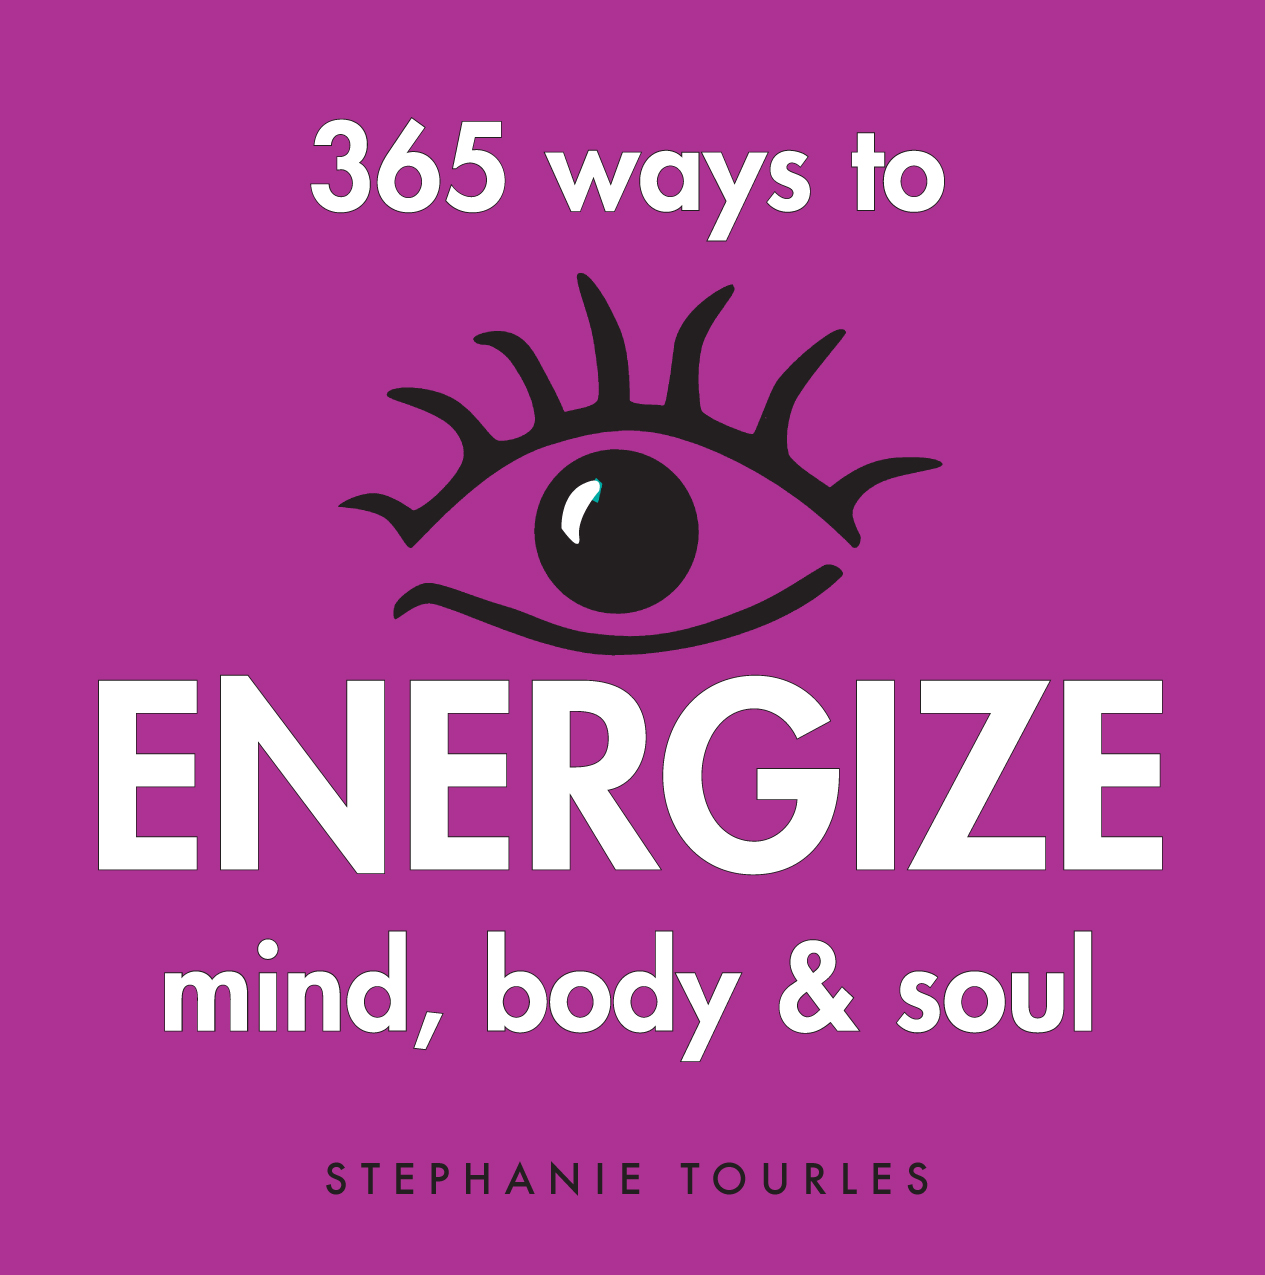 365 Ways to Energize Mind, Body & Soul  - Stephanie L. Tourles